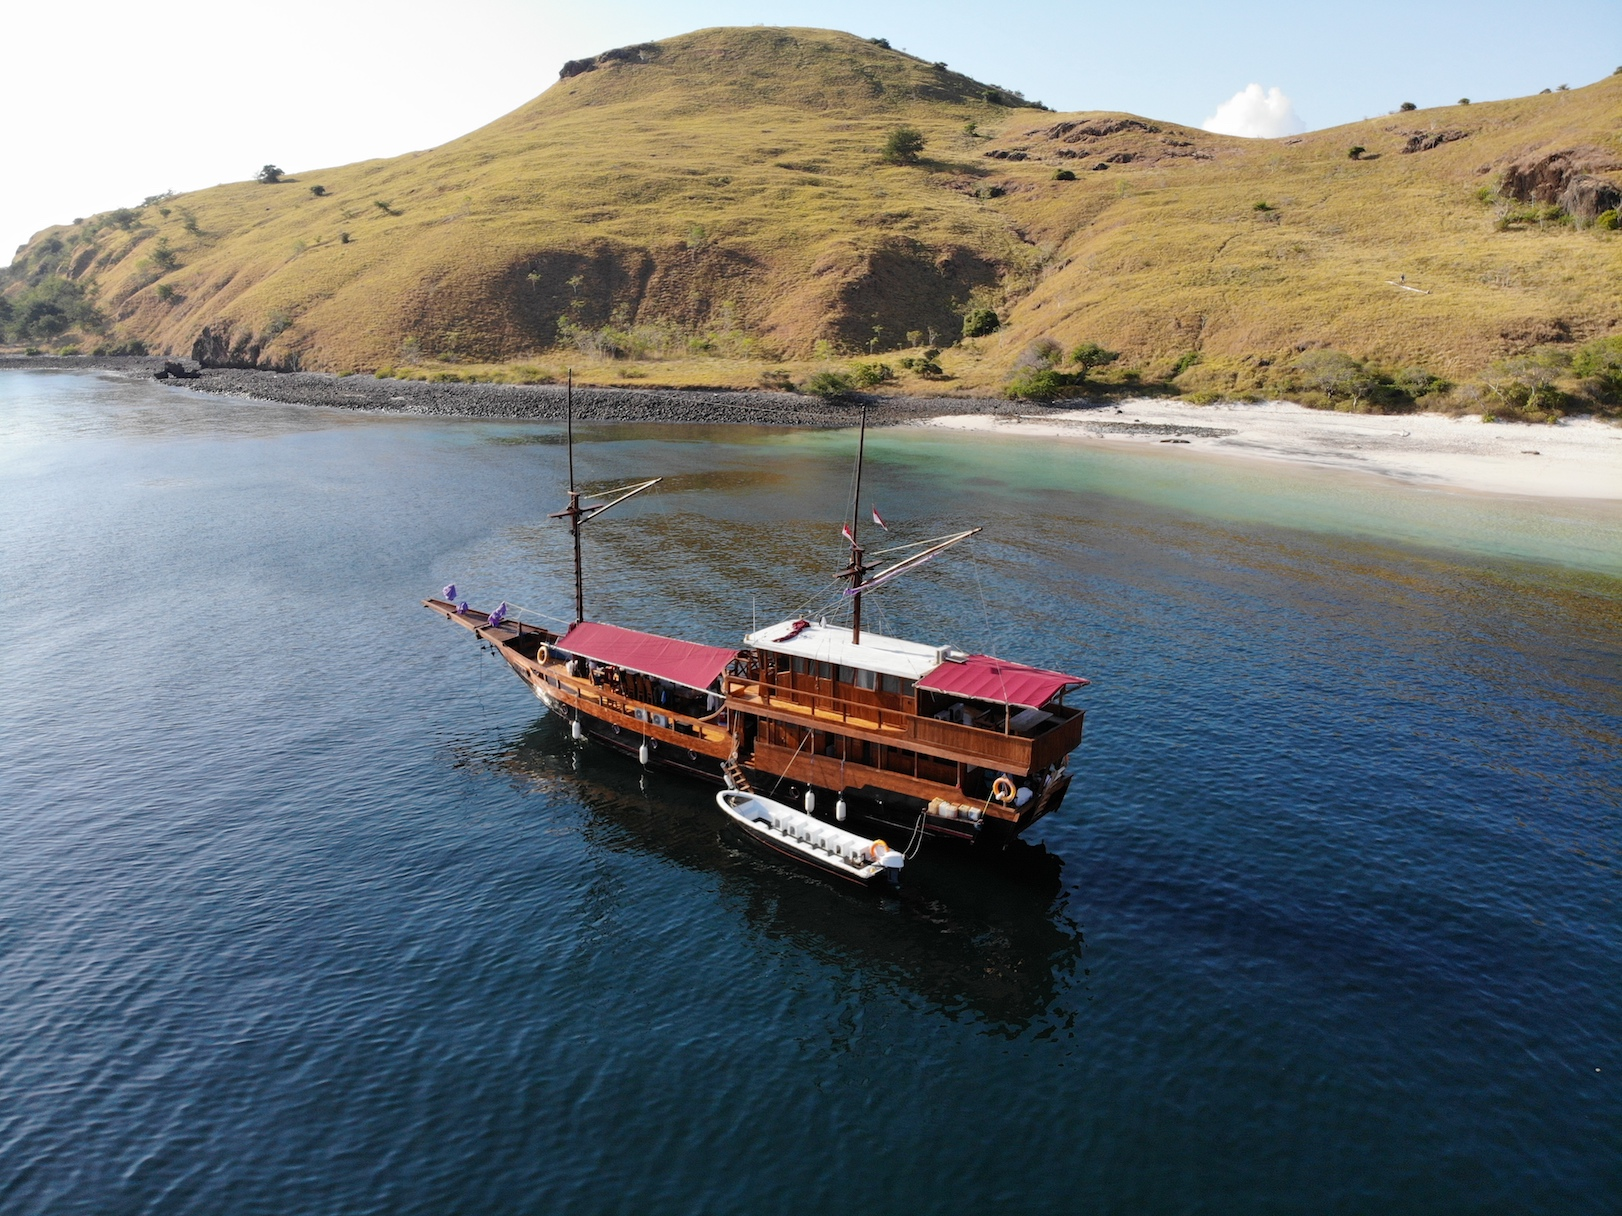 Komodo tour 3d2n, komodo tours package, labuan bajo tours, indonesian komodo tour, phinisi tour package, flores tour, cheap komodo island tour, komodo dragon tours.